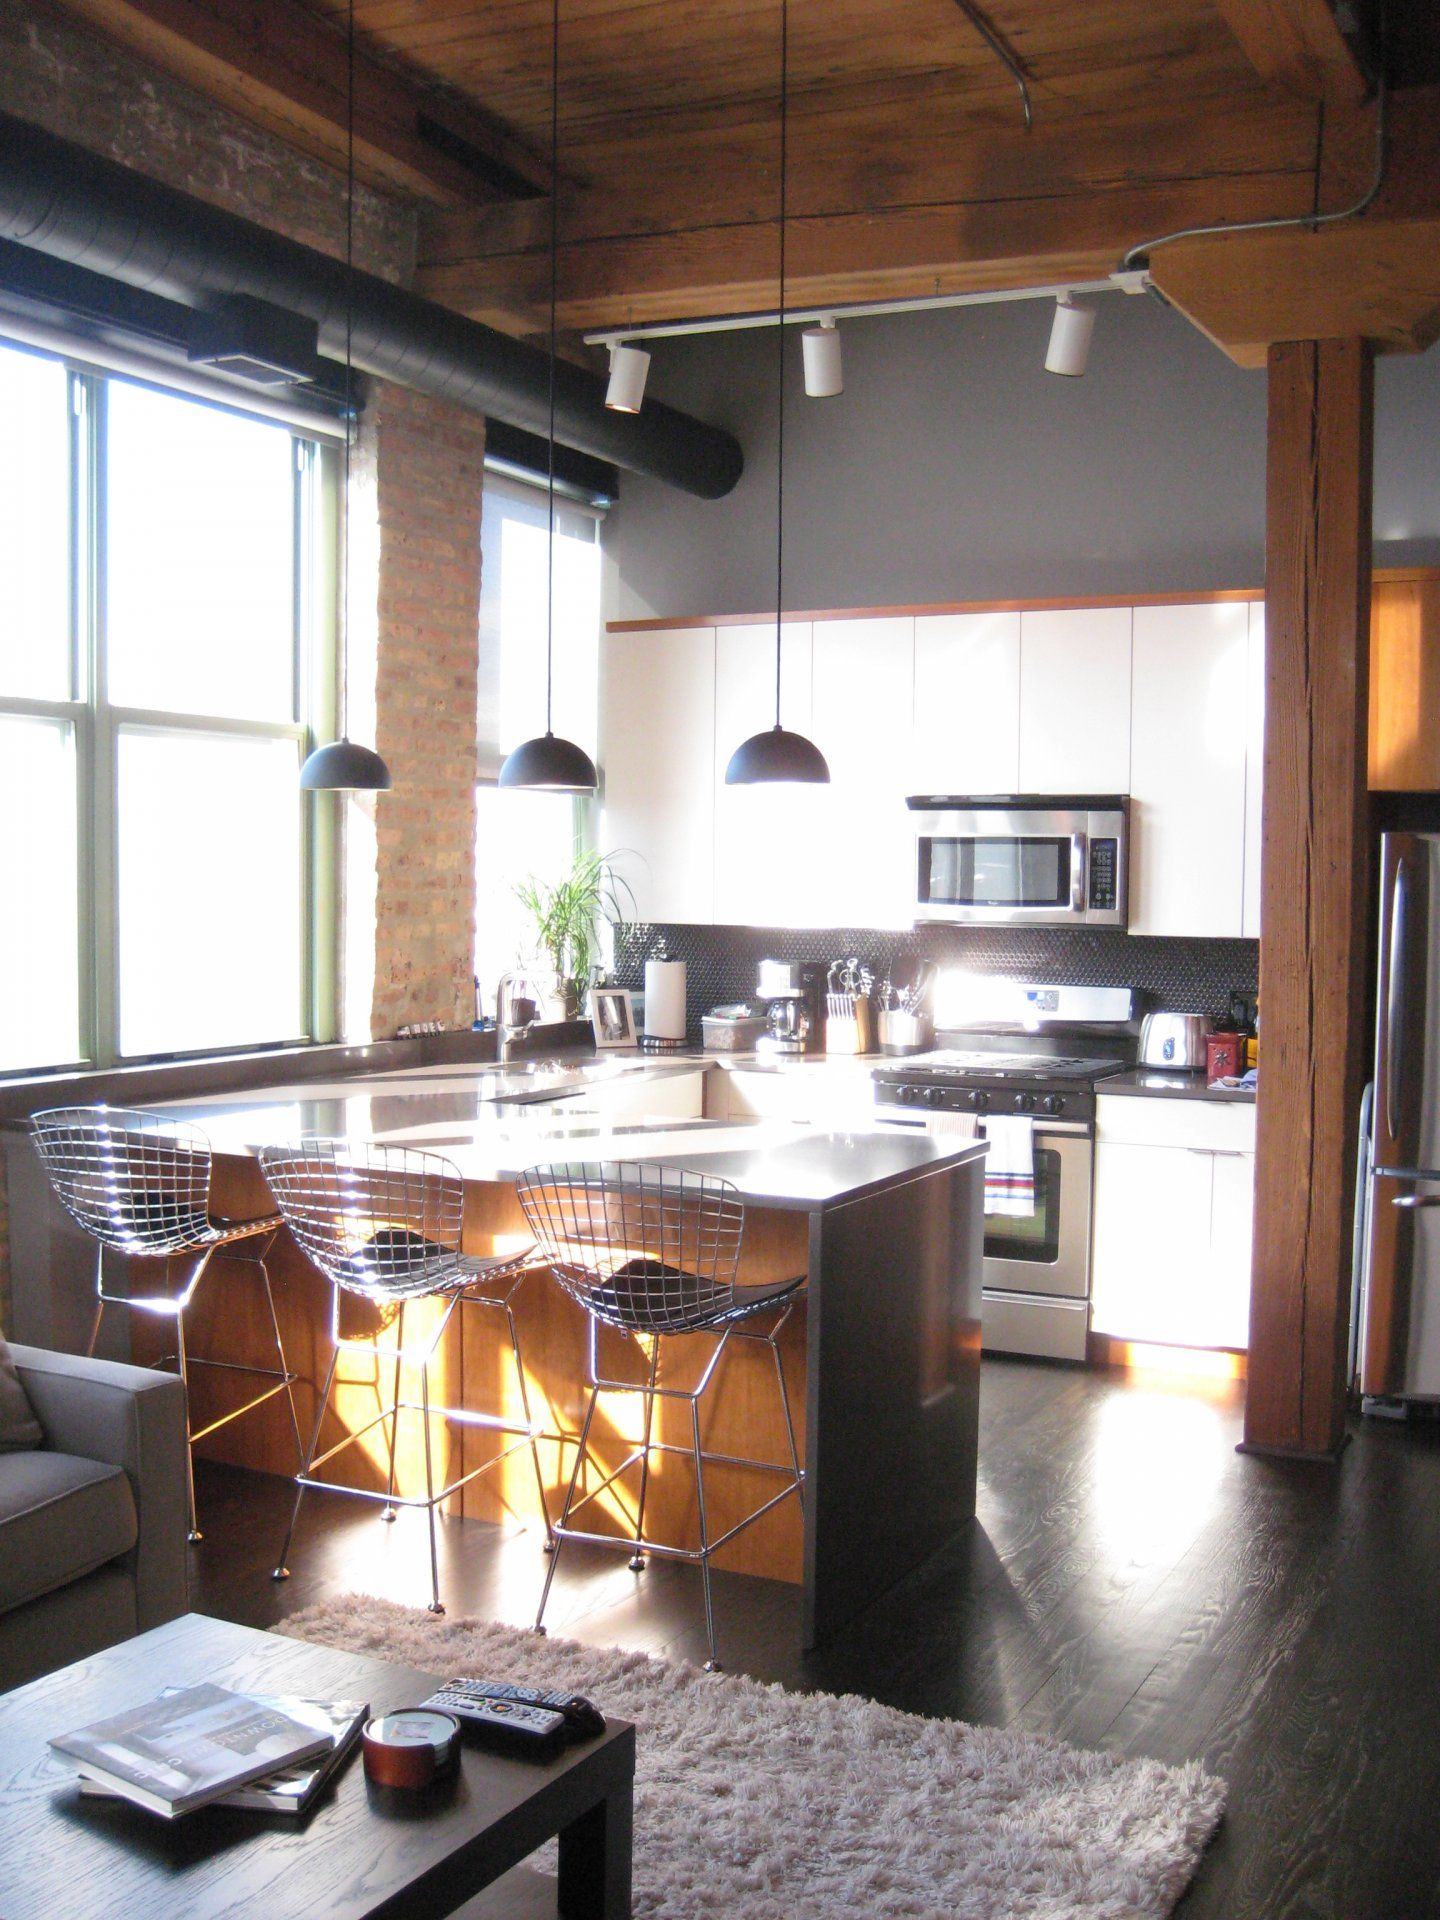 Bucktown Condos For Rent 1 Bedroom 1 Bathroom At 1701 N Damen Ave 301 Chicago Apartments For Rent Condo Decorating Chicago Apartment